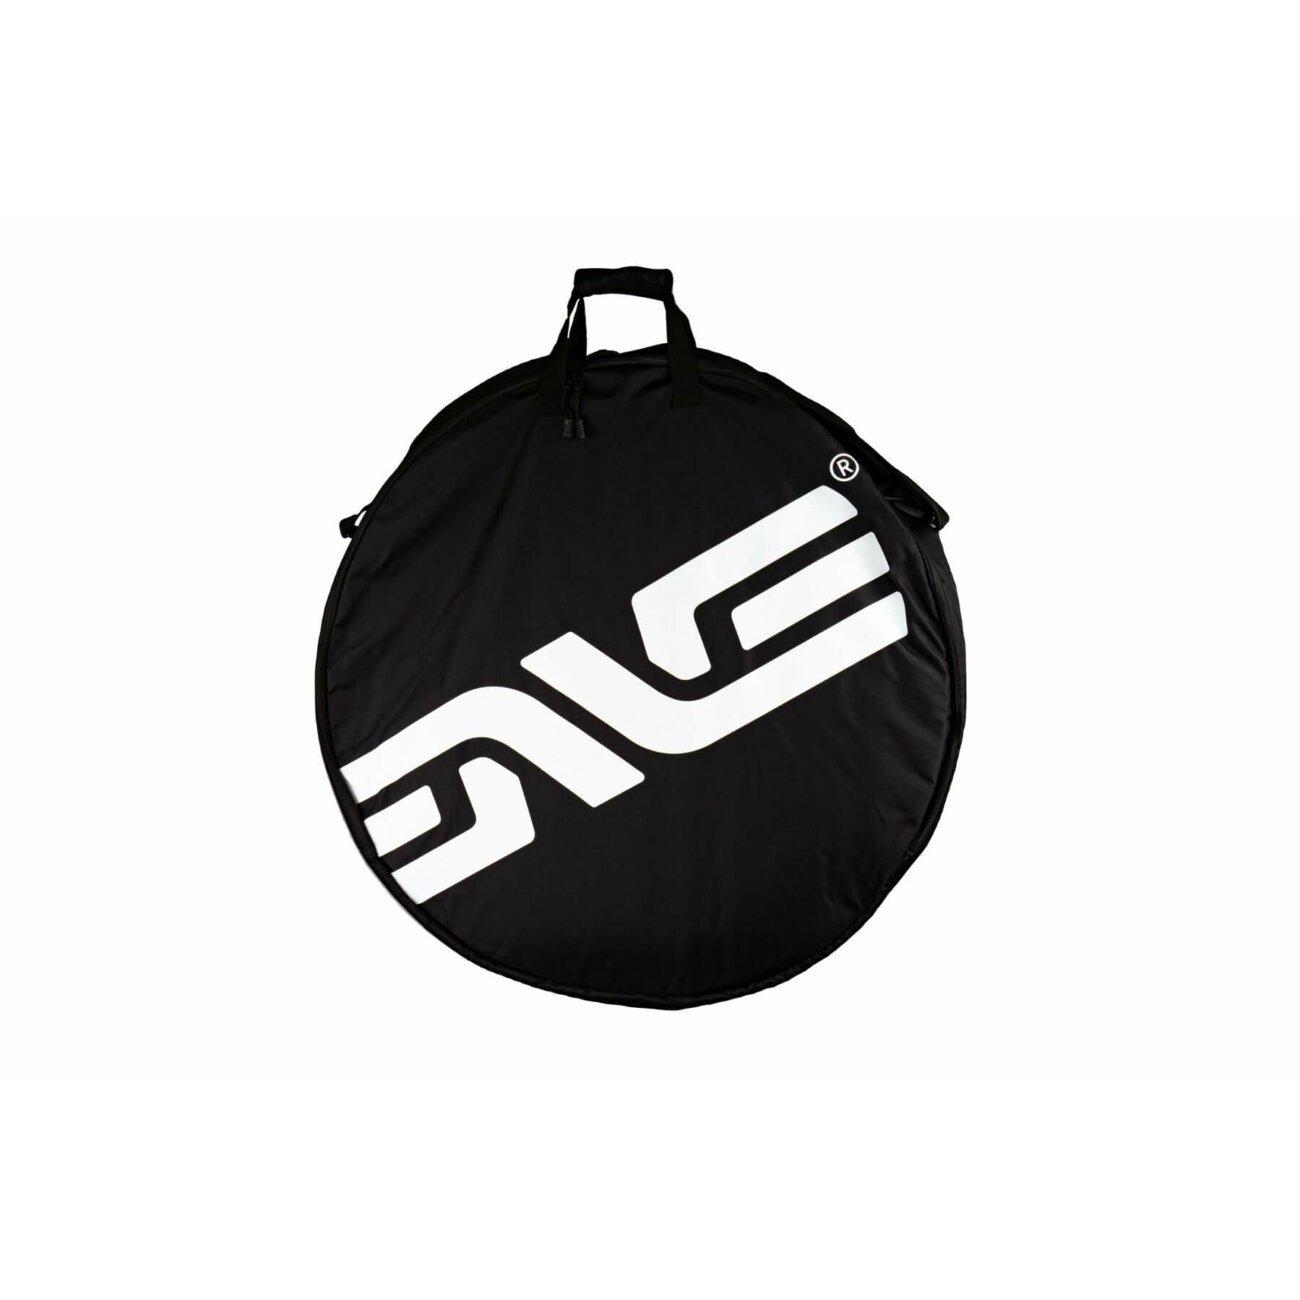 ENVE-ENVE Double Wheel Bag-Black-Road/MTB Wheelset-EN00000011-saddleback-elite-performance-cycling